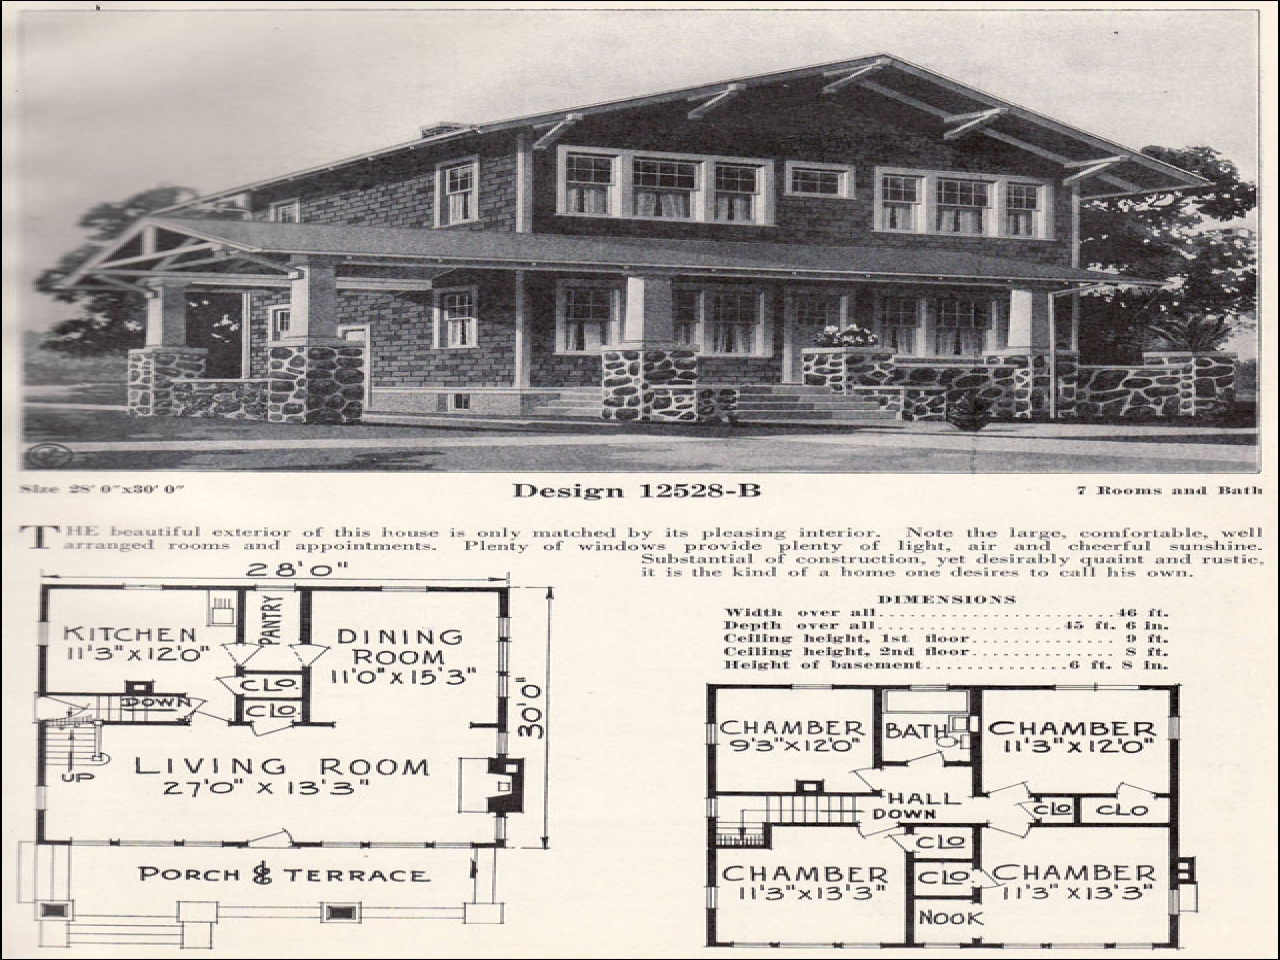 2 Story 1920s Craftsman Bungalow House Plans 1 1 2 Story